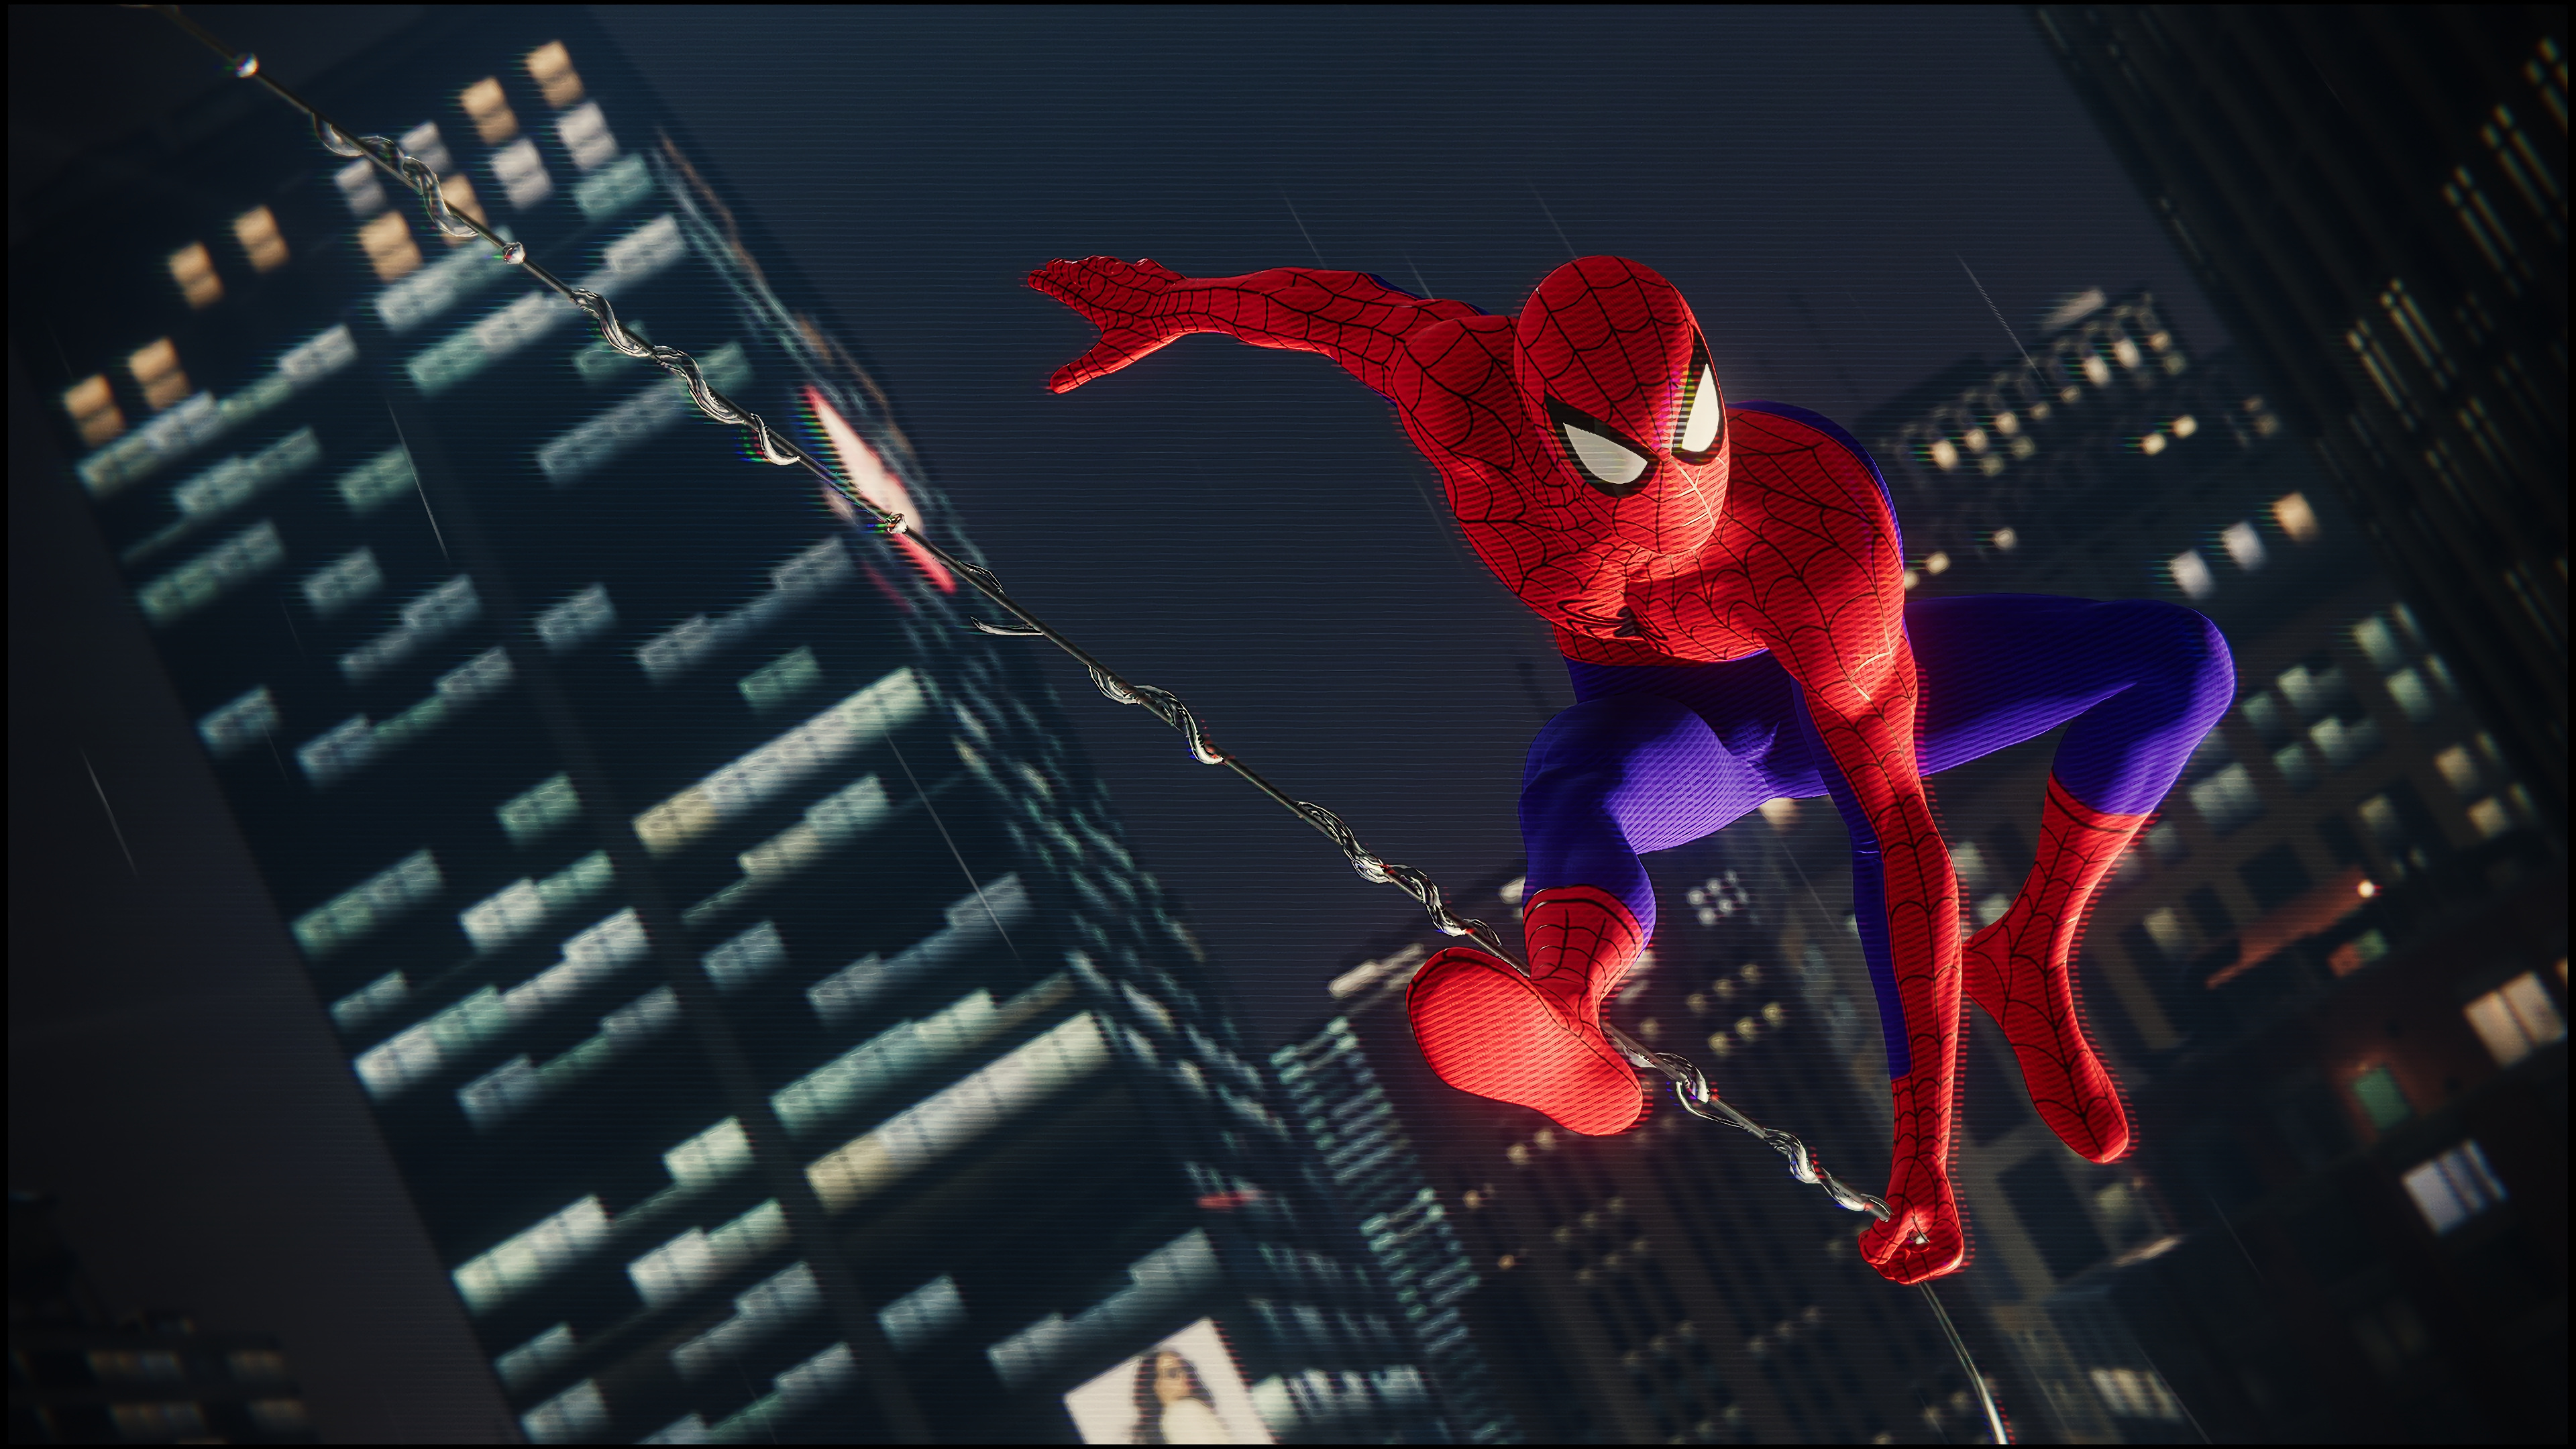 Spiderman 4k Ps4 Game 2018 Hd Games 4k Wallpapers Images Backgrounds Photos And Pictures